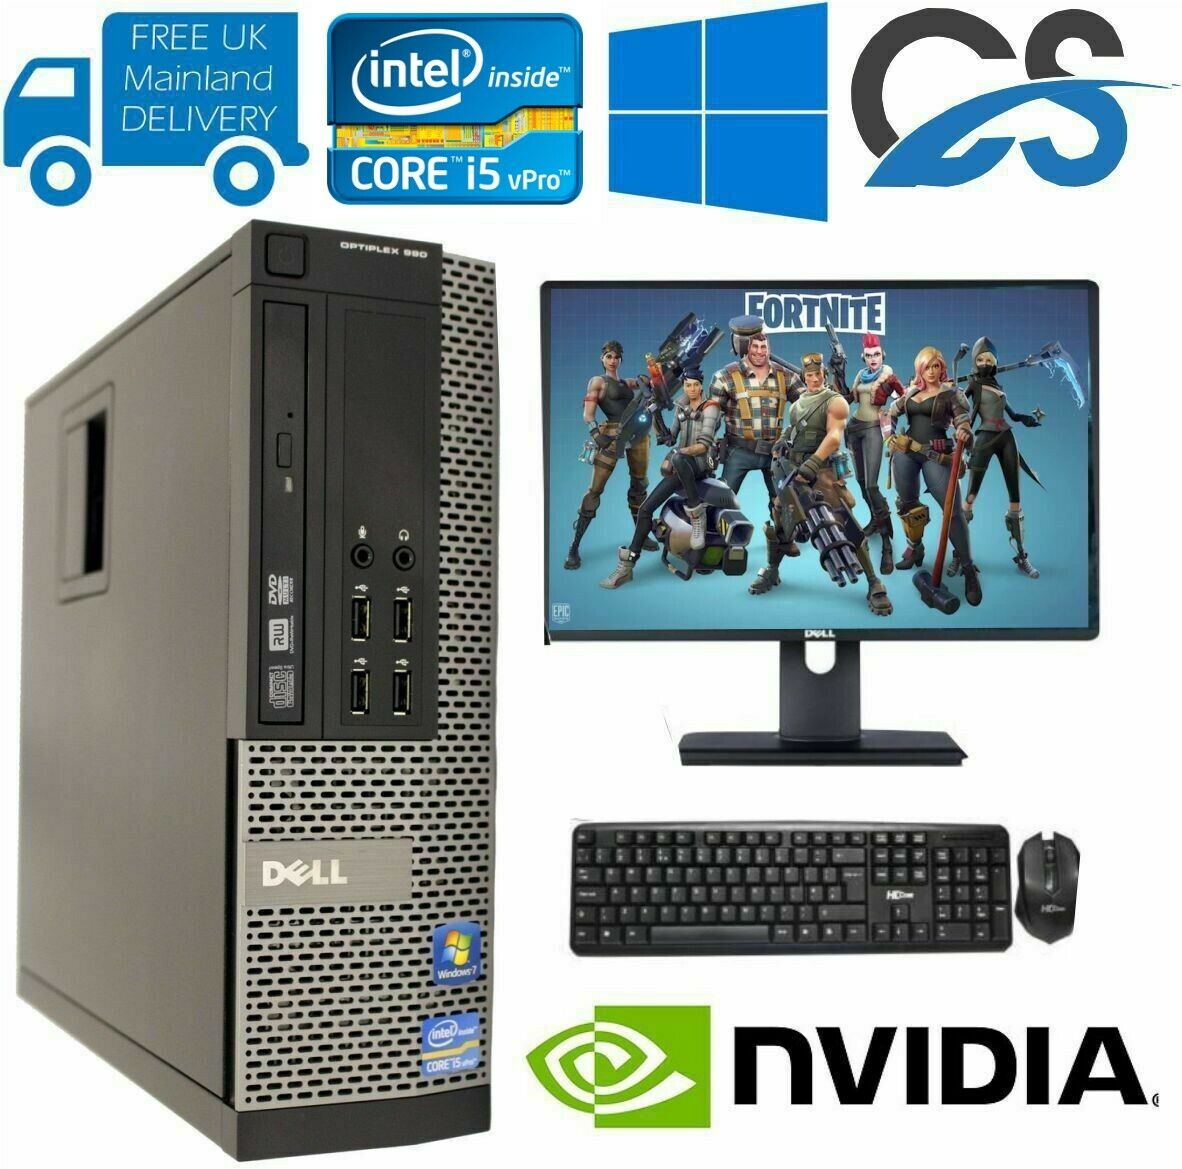 Computer Games - FAST GAMING DELL BUNDLE TOWER PC FULL SET COMPUTER SYSTEM INTEL i5 16GB GT710